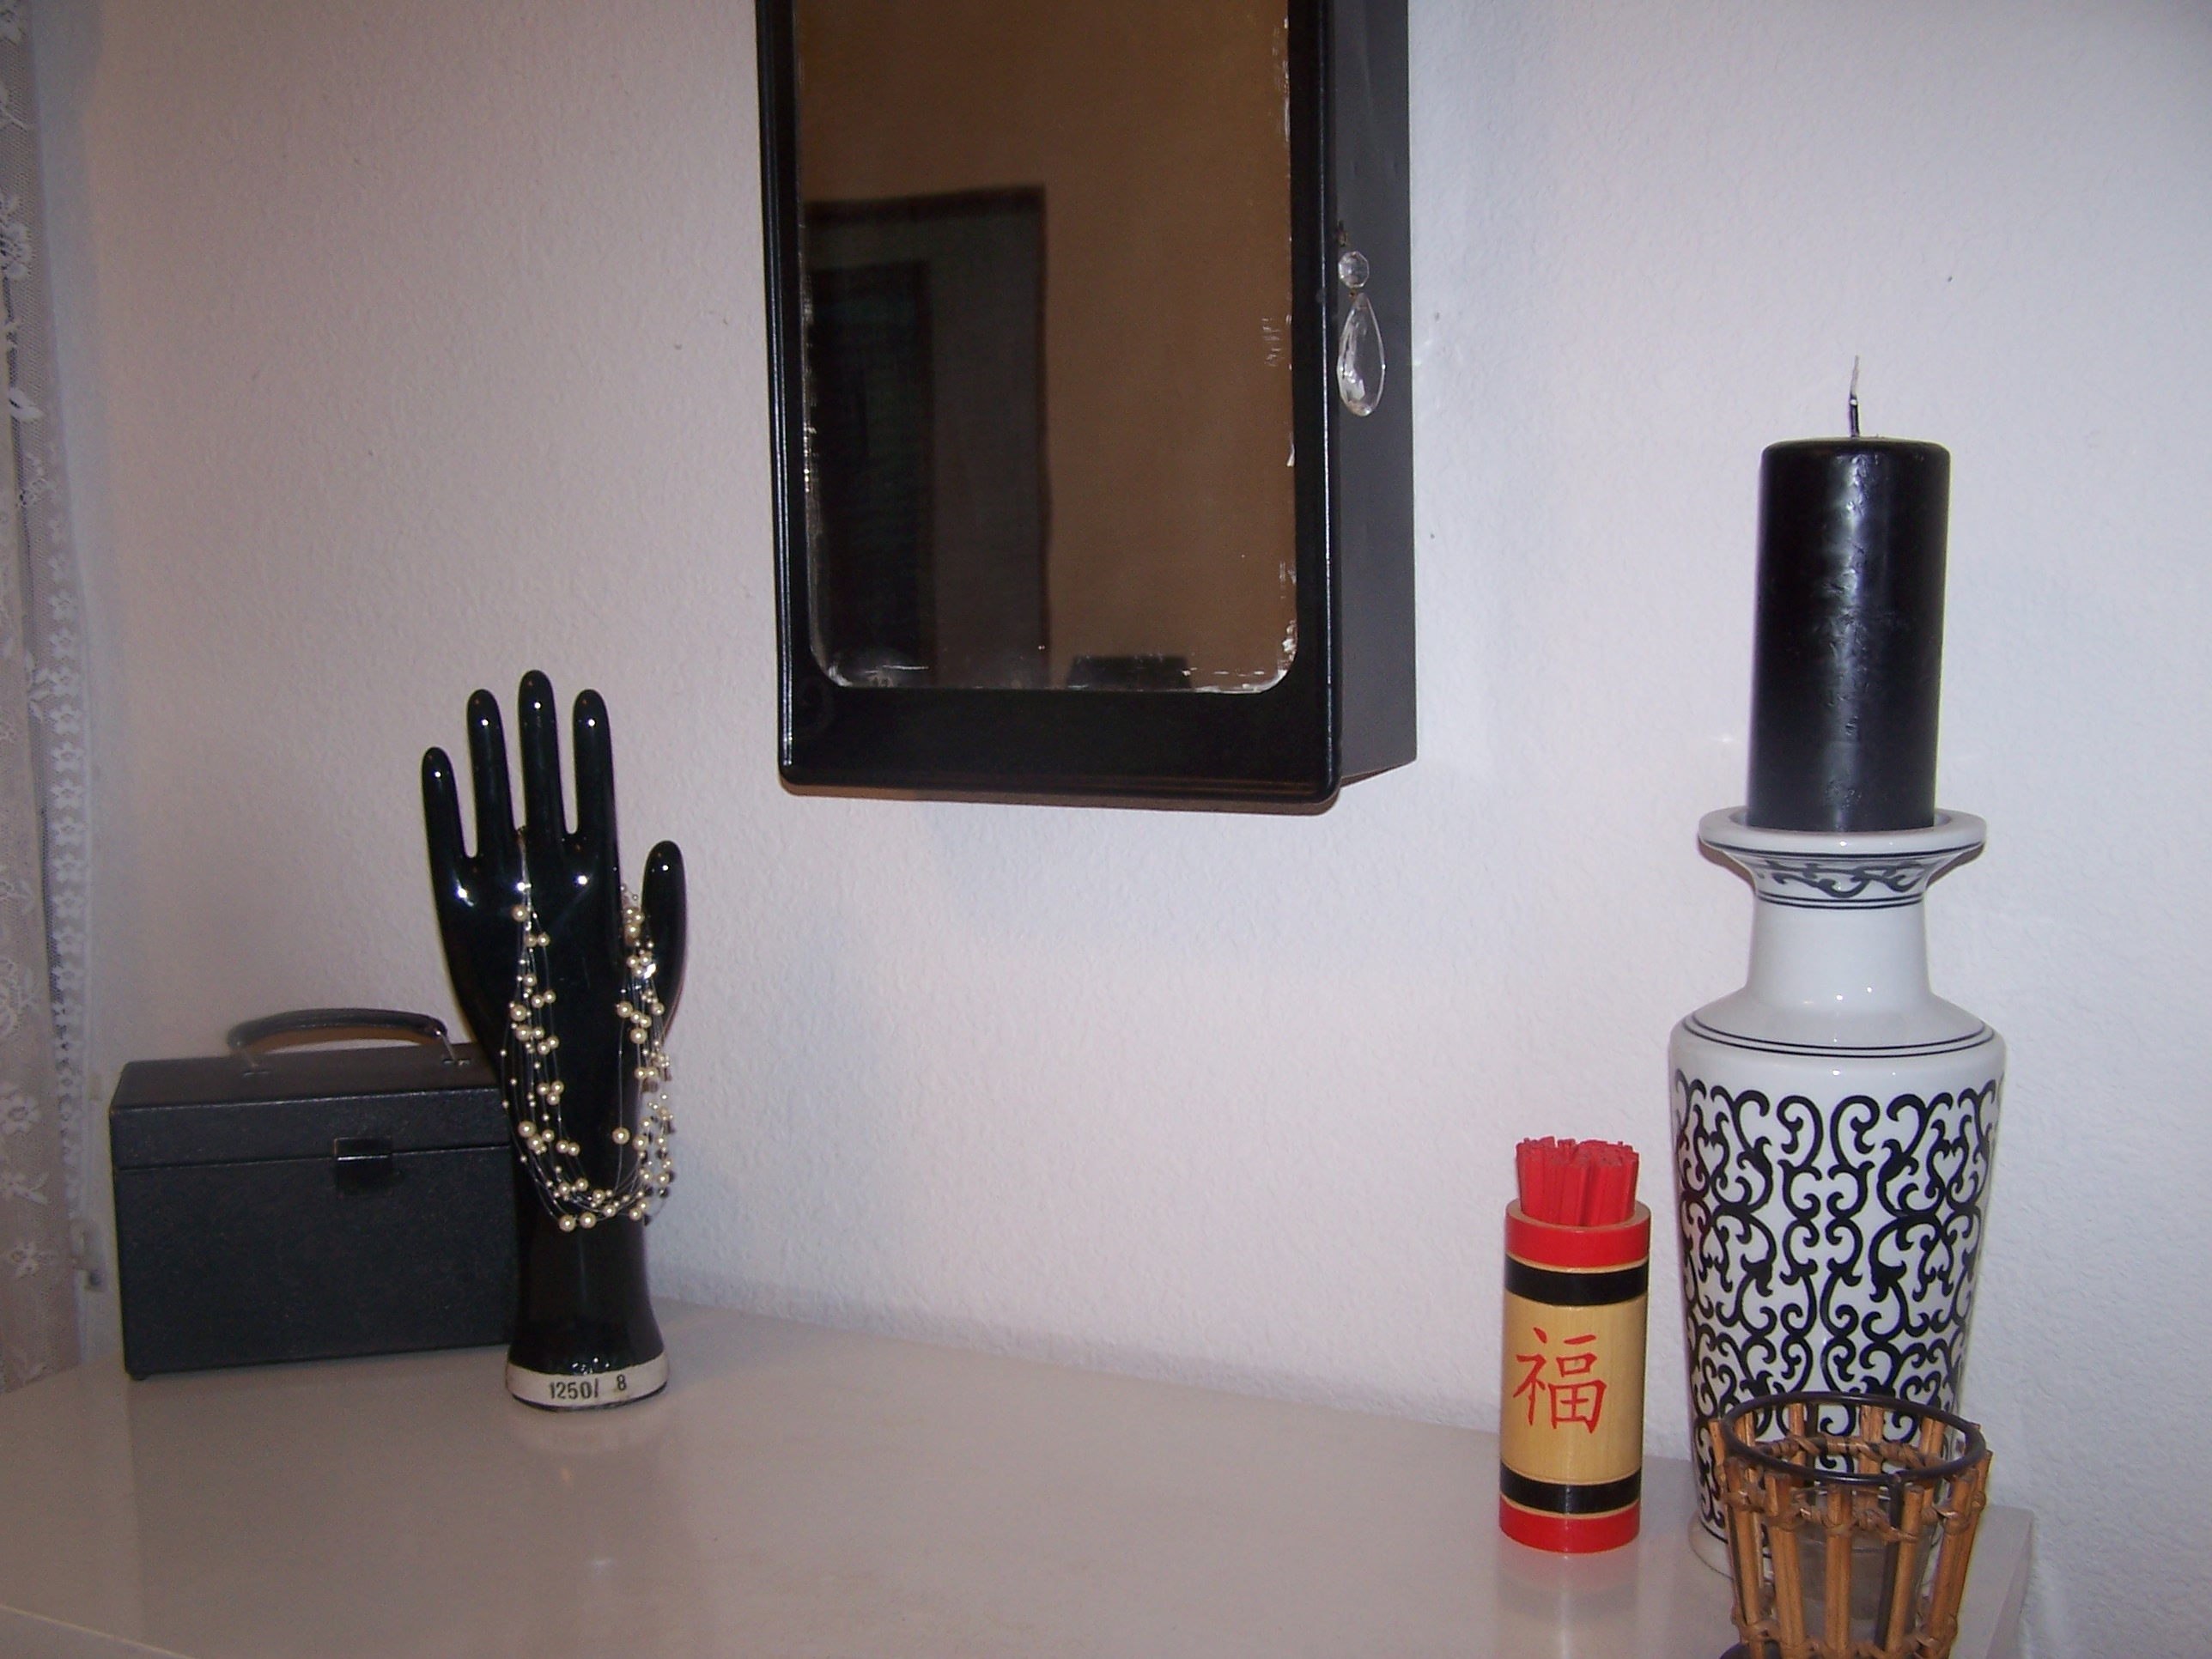 The hand is a vintage glove mold, the box is an old Kodak box, which we keep our momentos in. The mirror is an antique medicine cabinet, which we painted black and added a chendelier crystal for a pull.